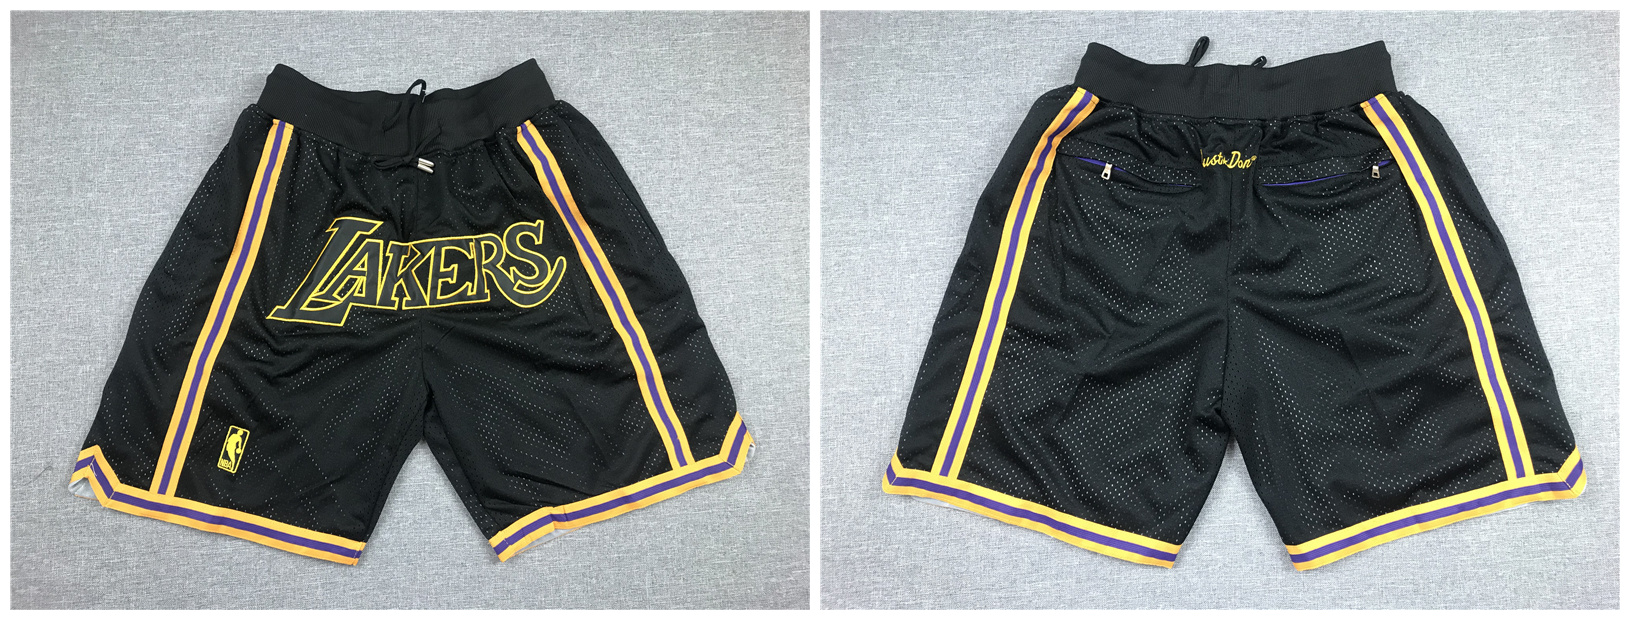 Lakers Black Just Don With Pocket Swingman Shorts